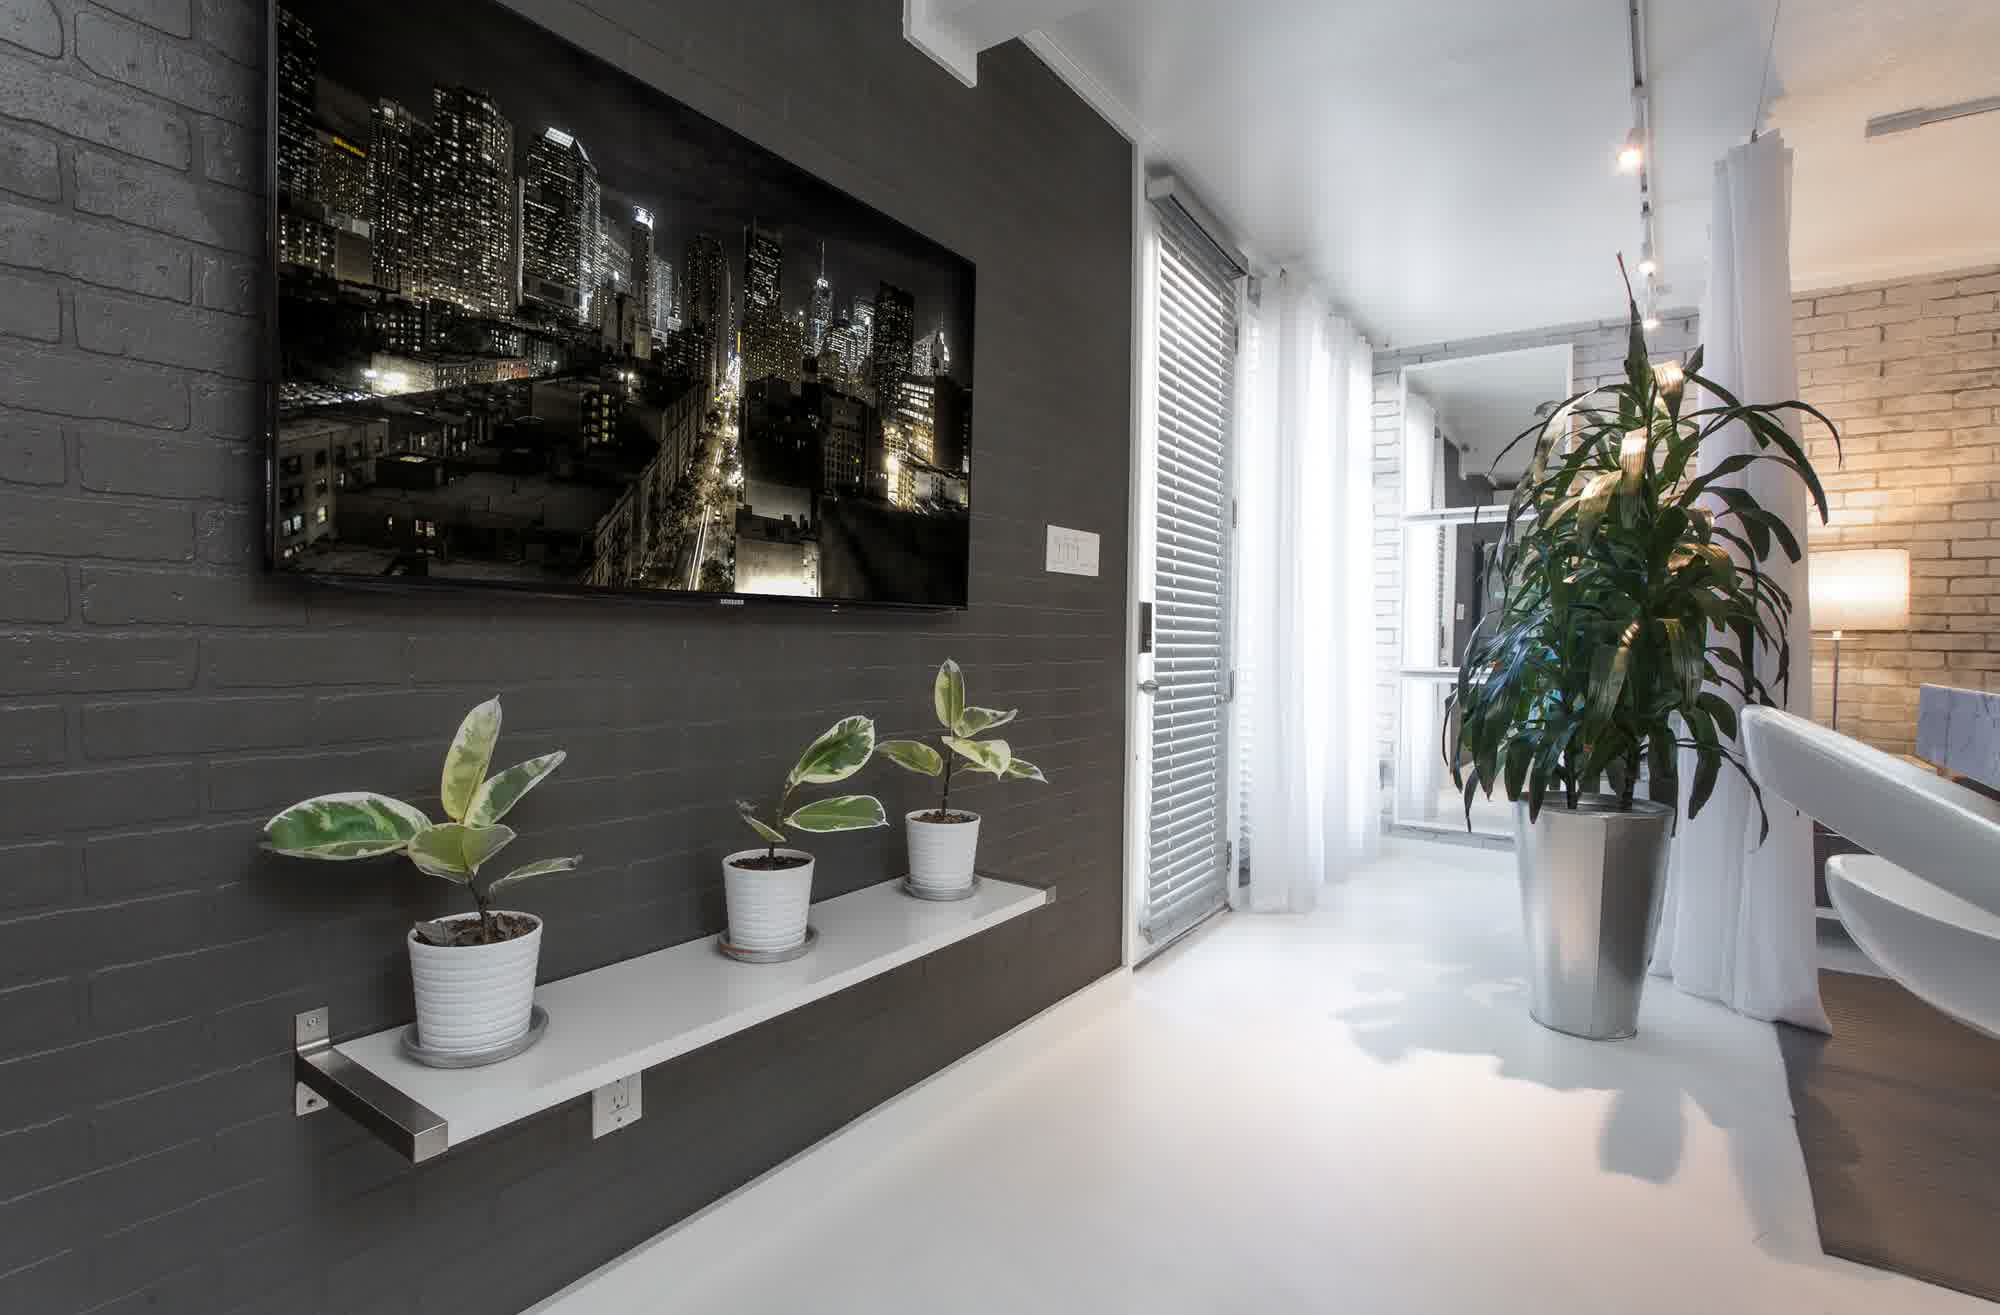 captivating-hallway-decoration-with-rectangular-lcd-tv-mounted-on-dark-tiles-wall-unify-plant-pot-attached-in-floating-shelves-featuring-big-silver-flowers-incorporates-slick-flooring-ideas-awesome-ga